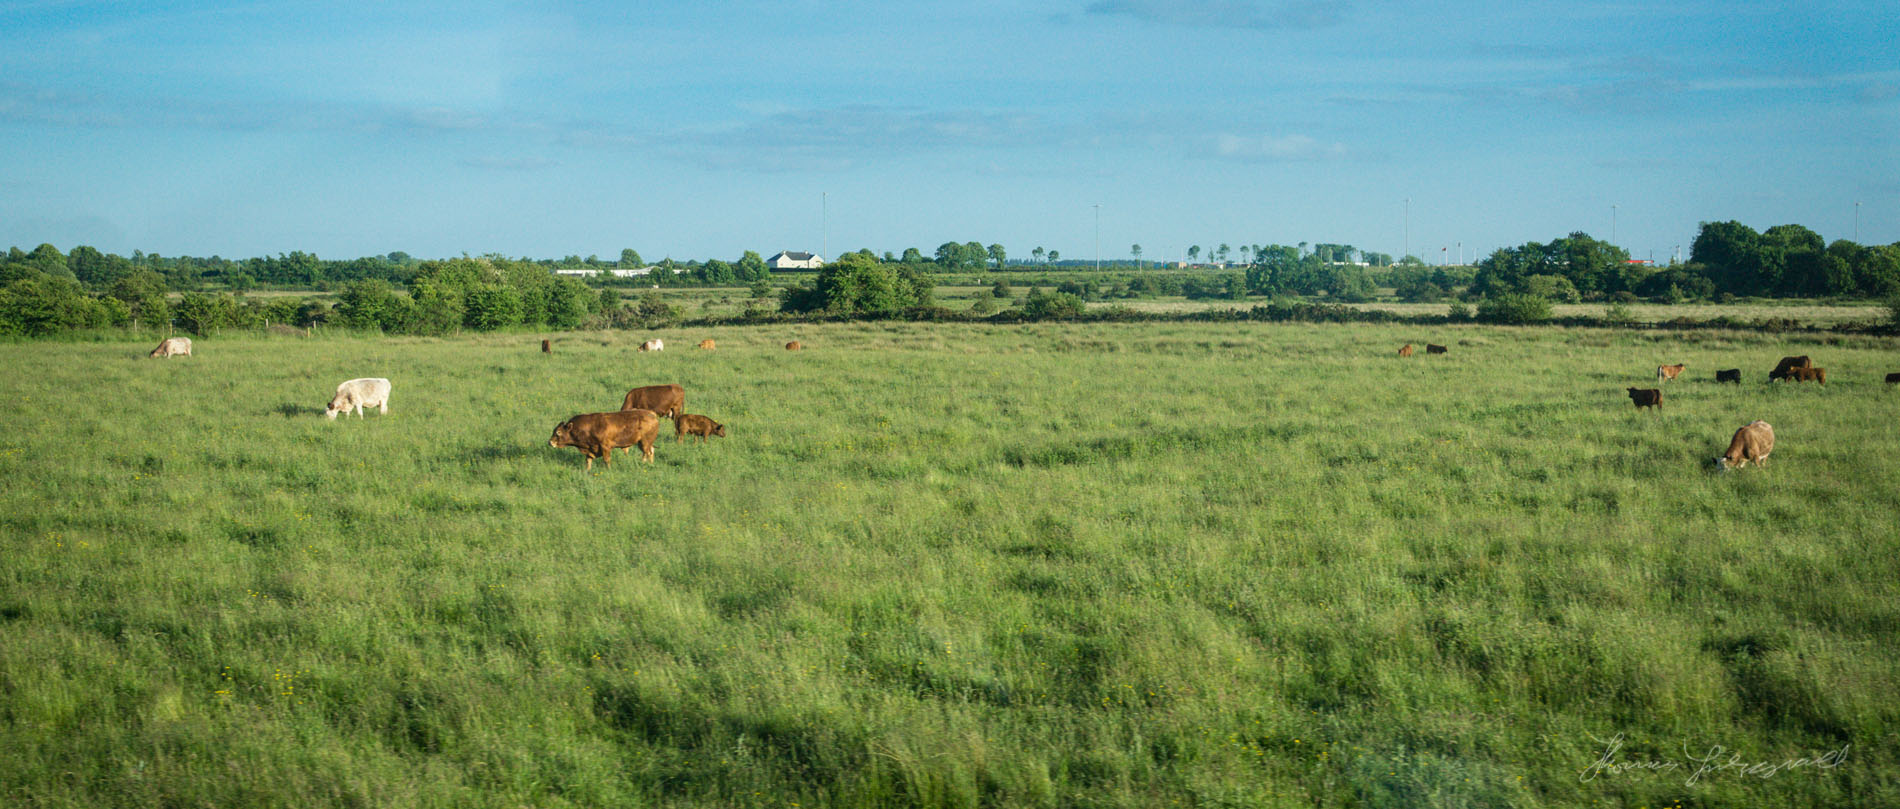 More Cows in the Midlands